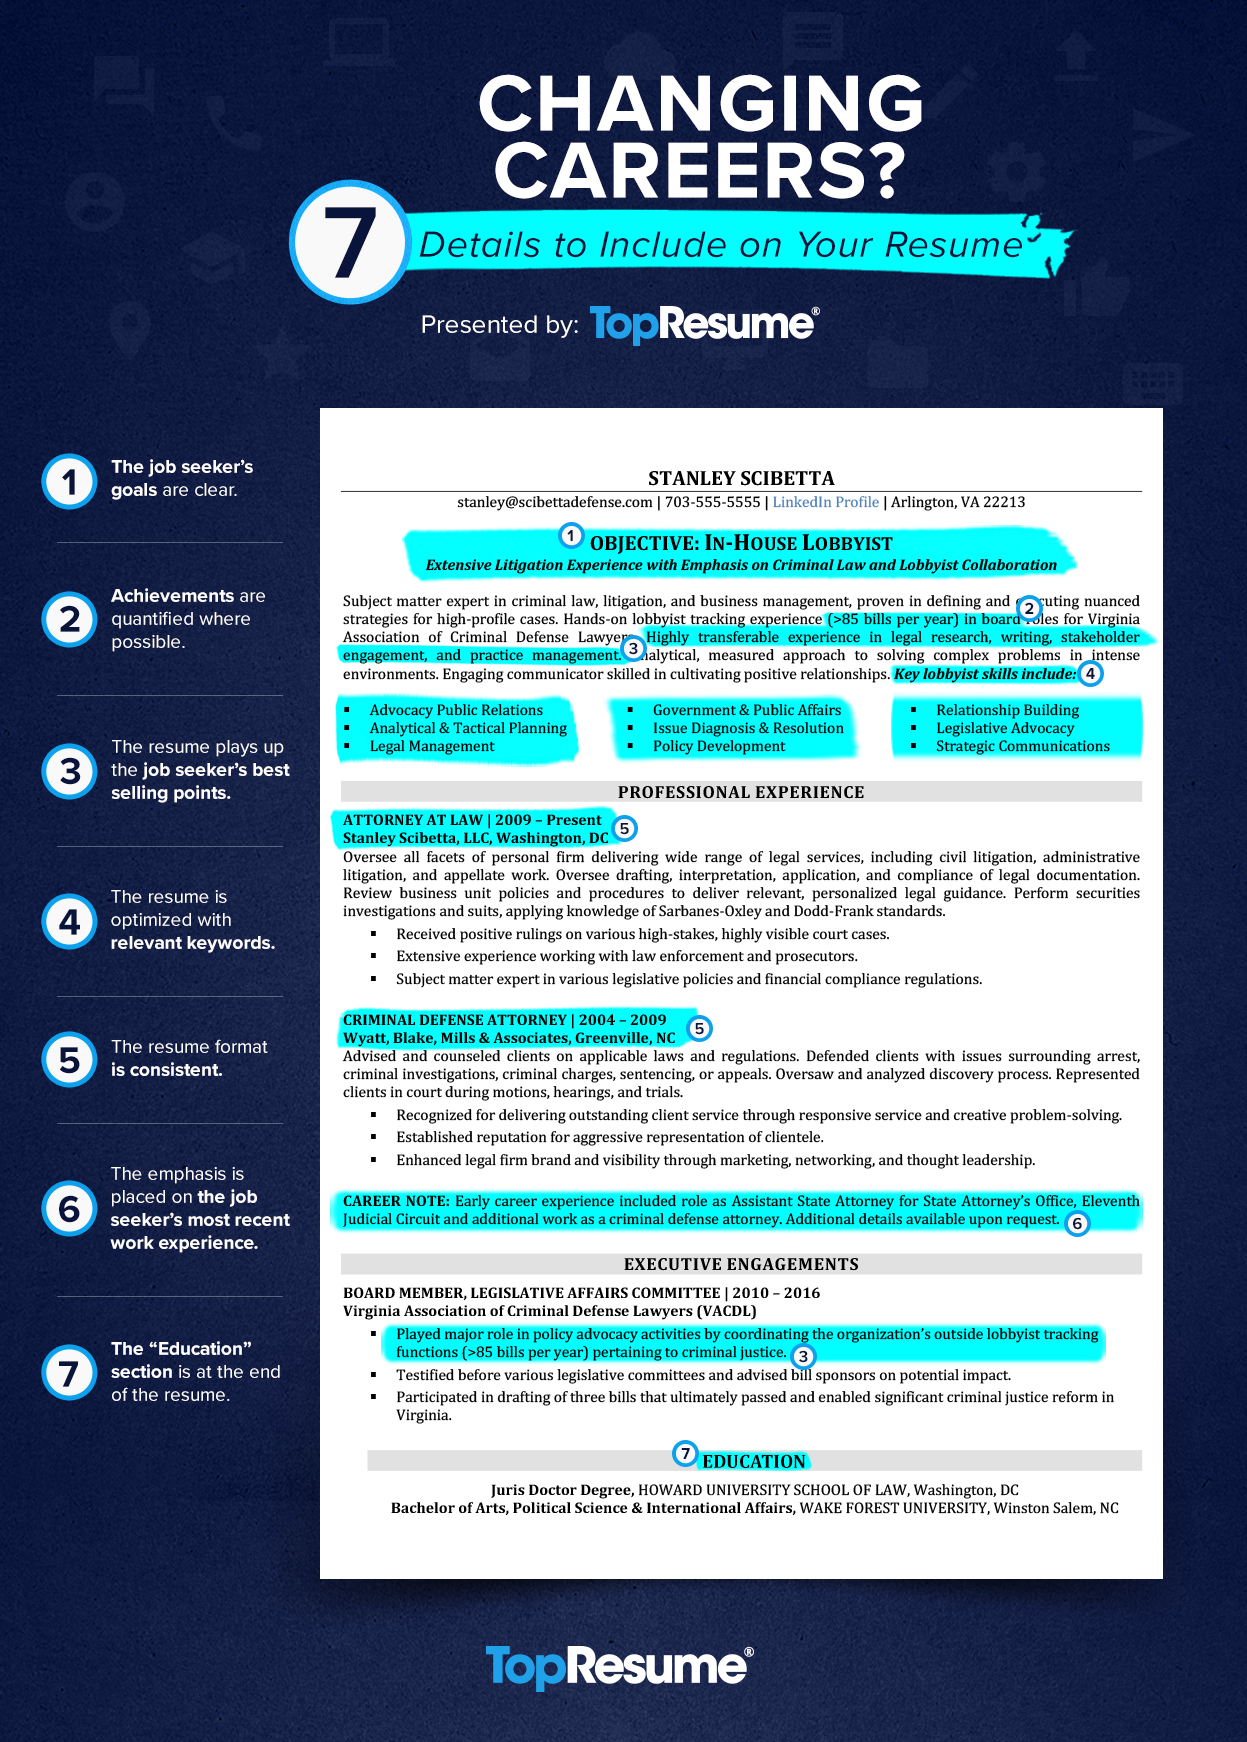 changing careers details to include on your resume topresume summary for career change ig Resume Resume Summary For Career Change